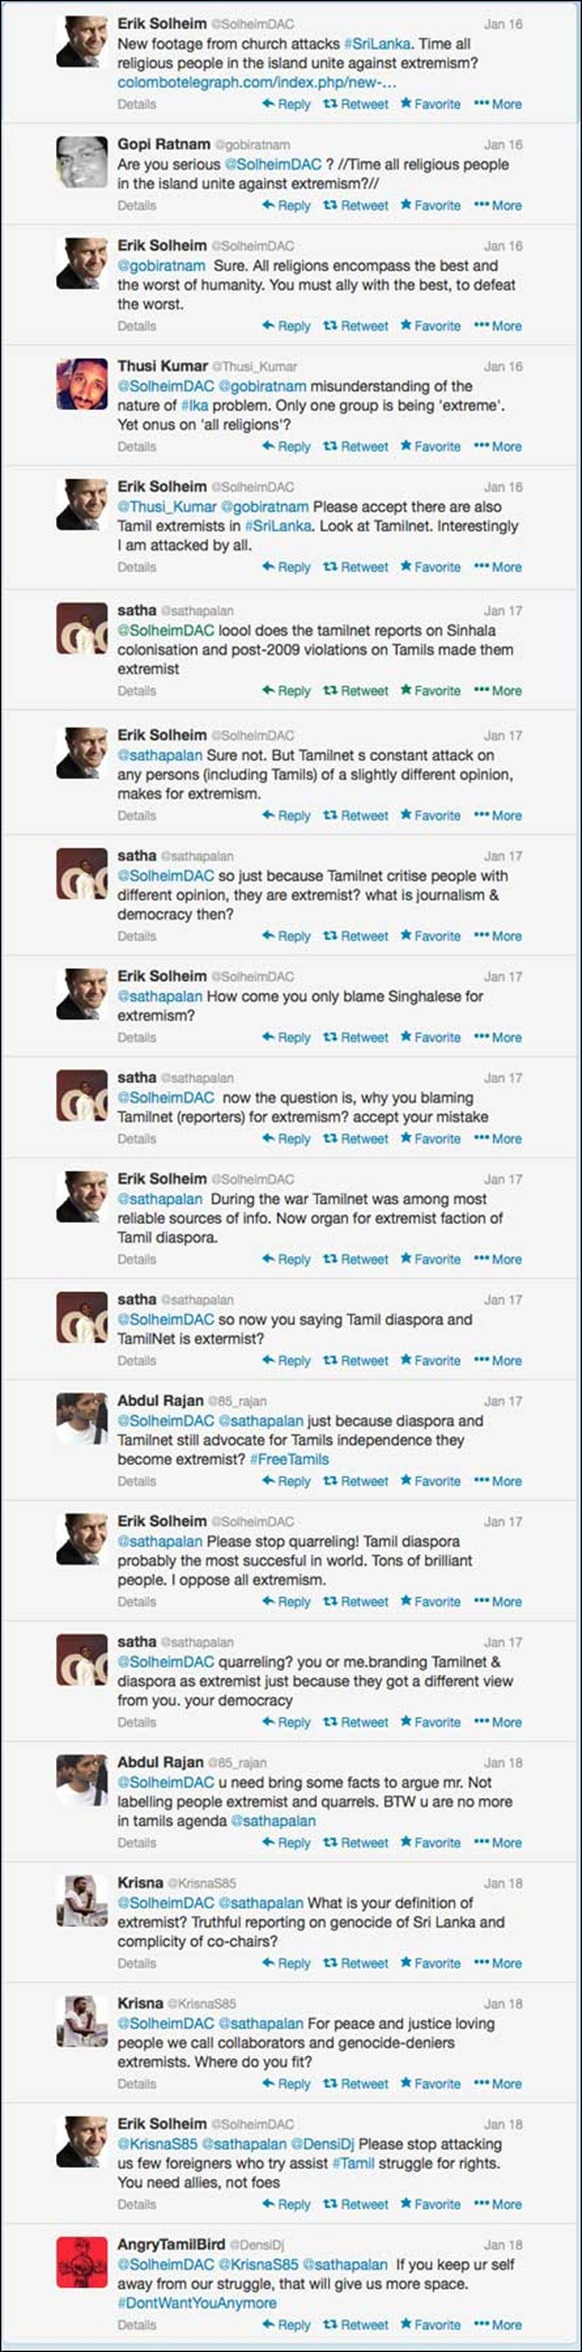 Twitter_discourse_on_extremism